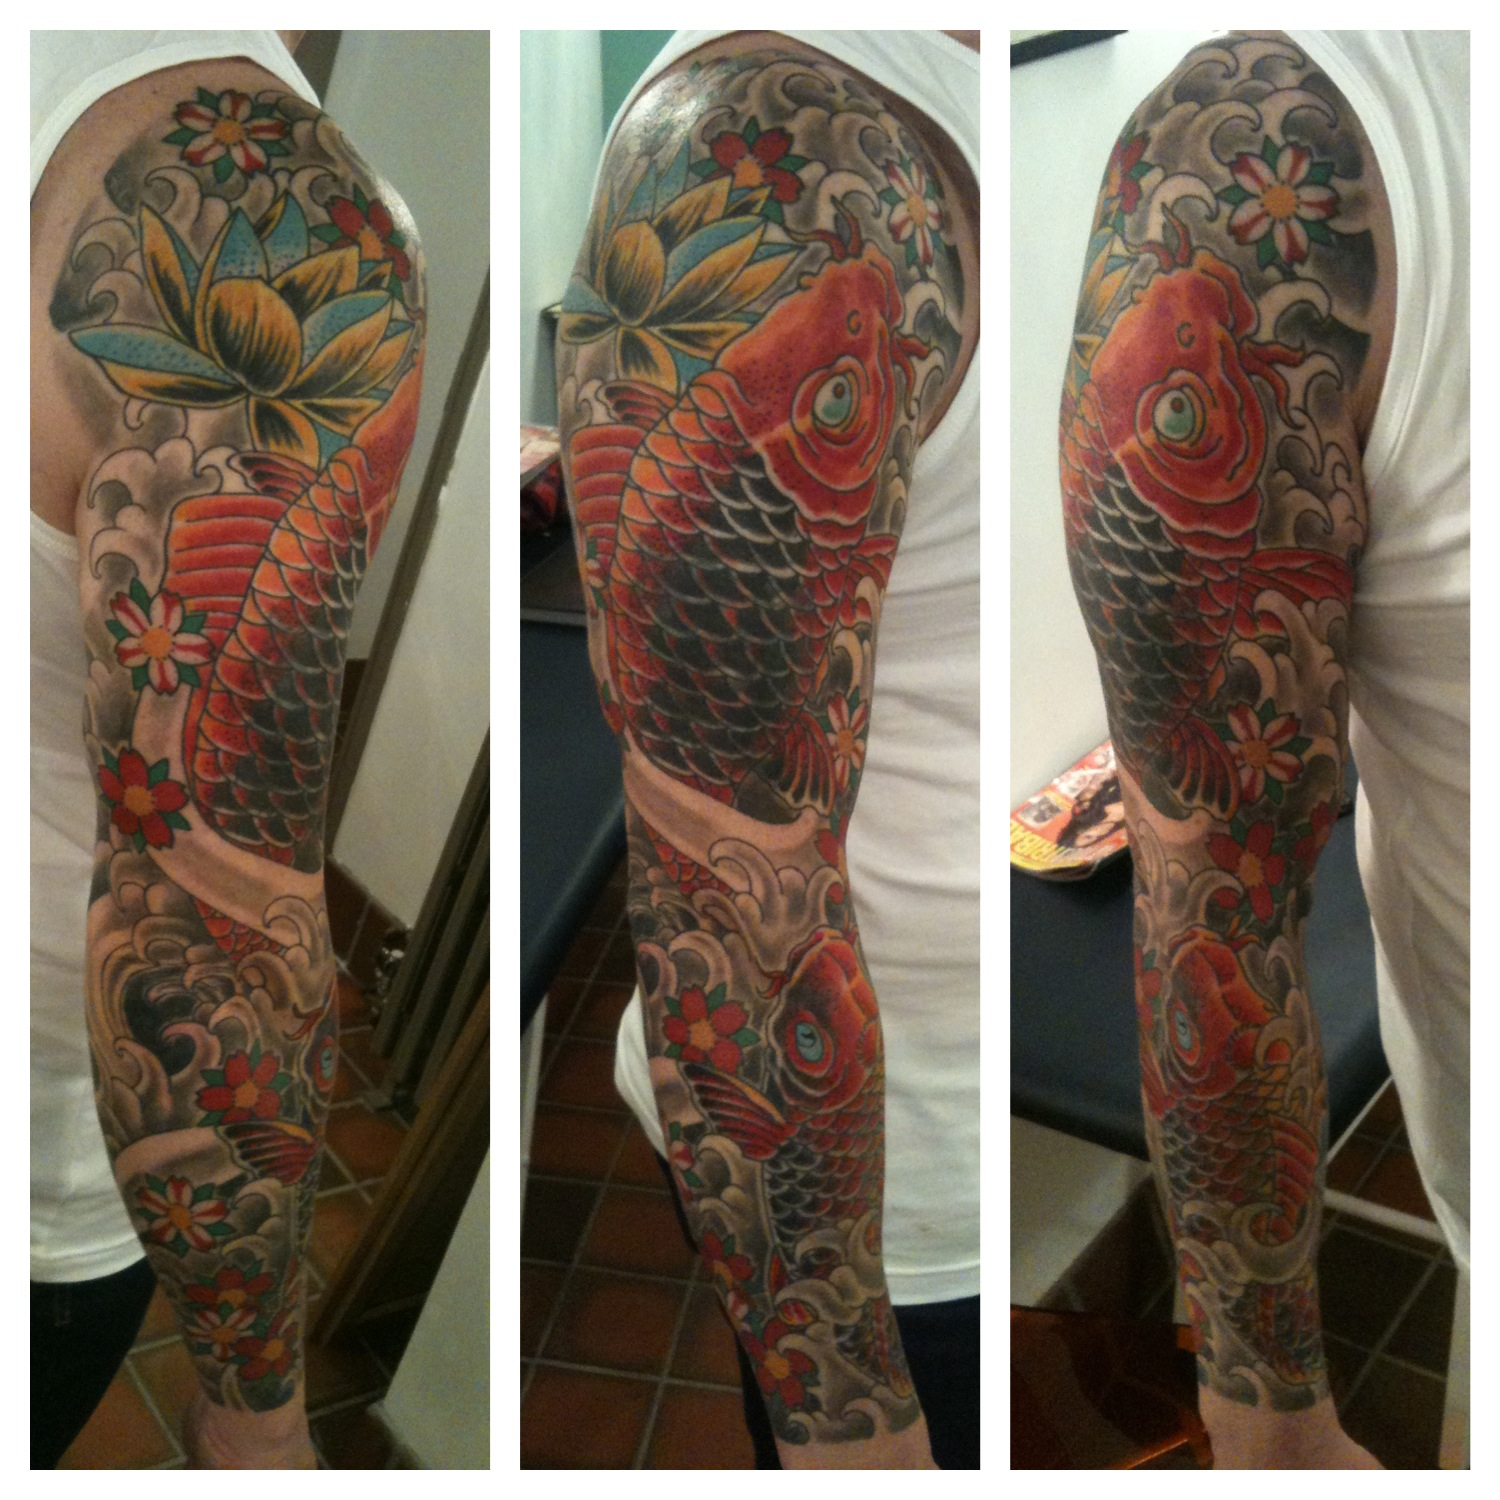 finished this cover up sleeve this week